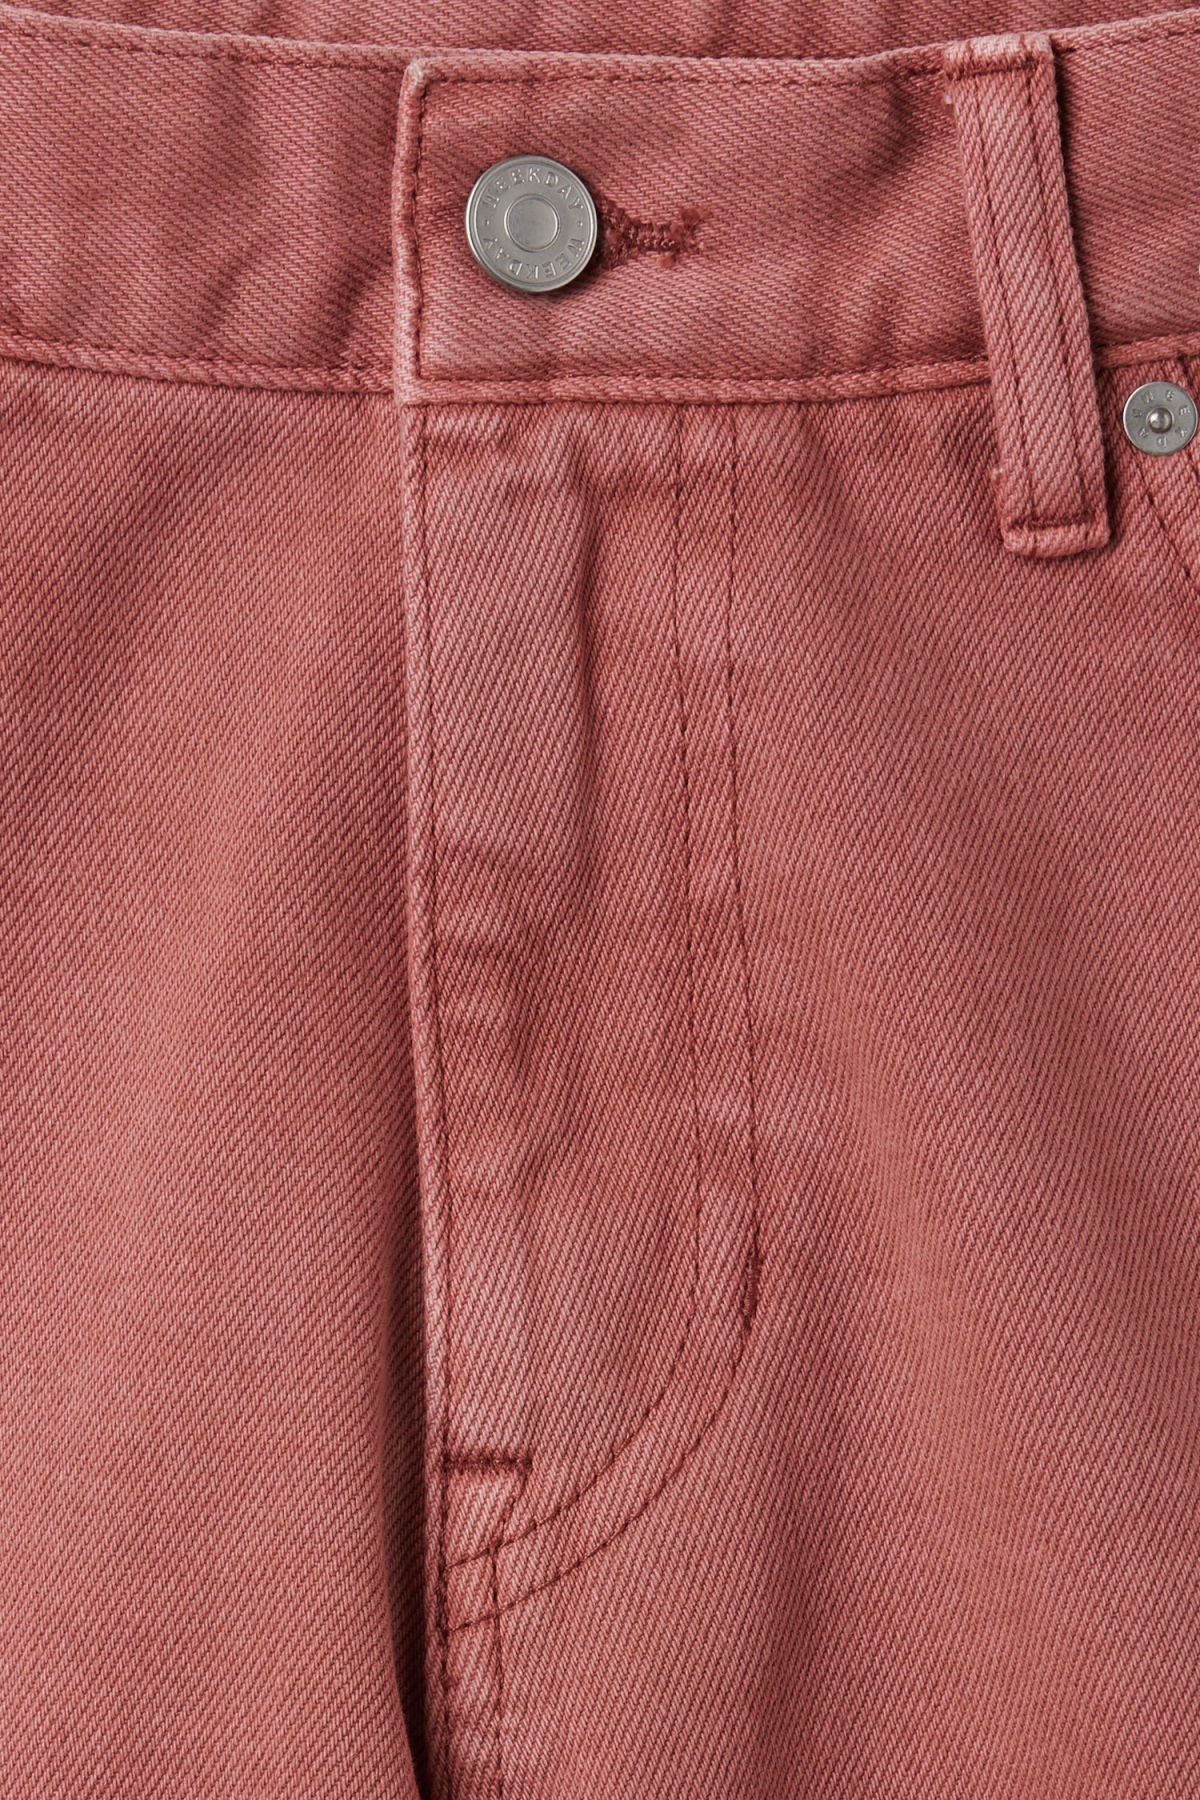 Detailed image of Weekday beach day rose shorts in orange